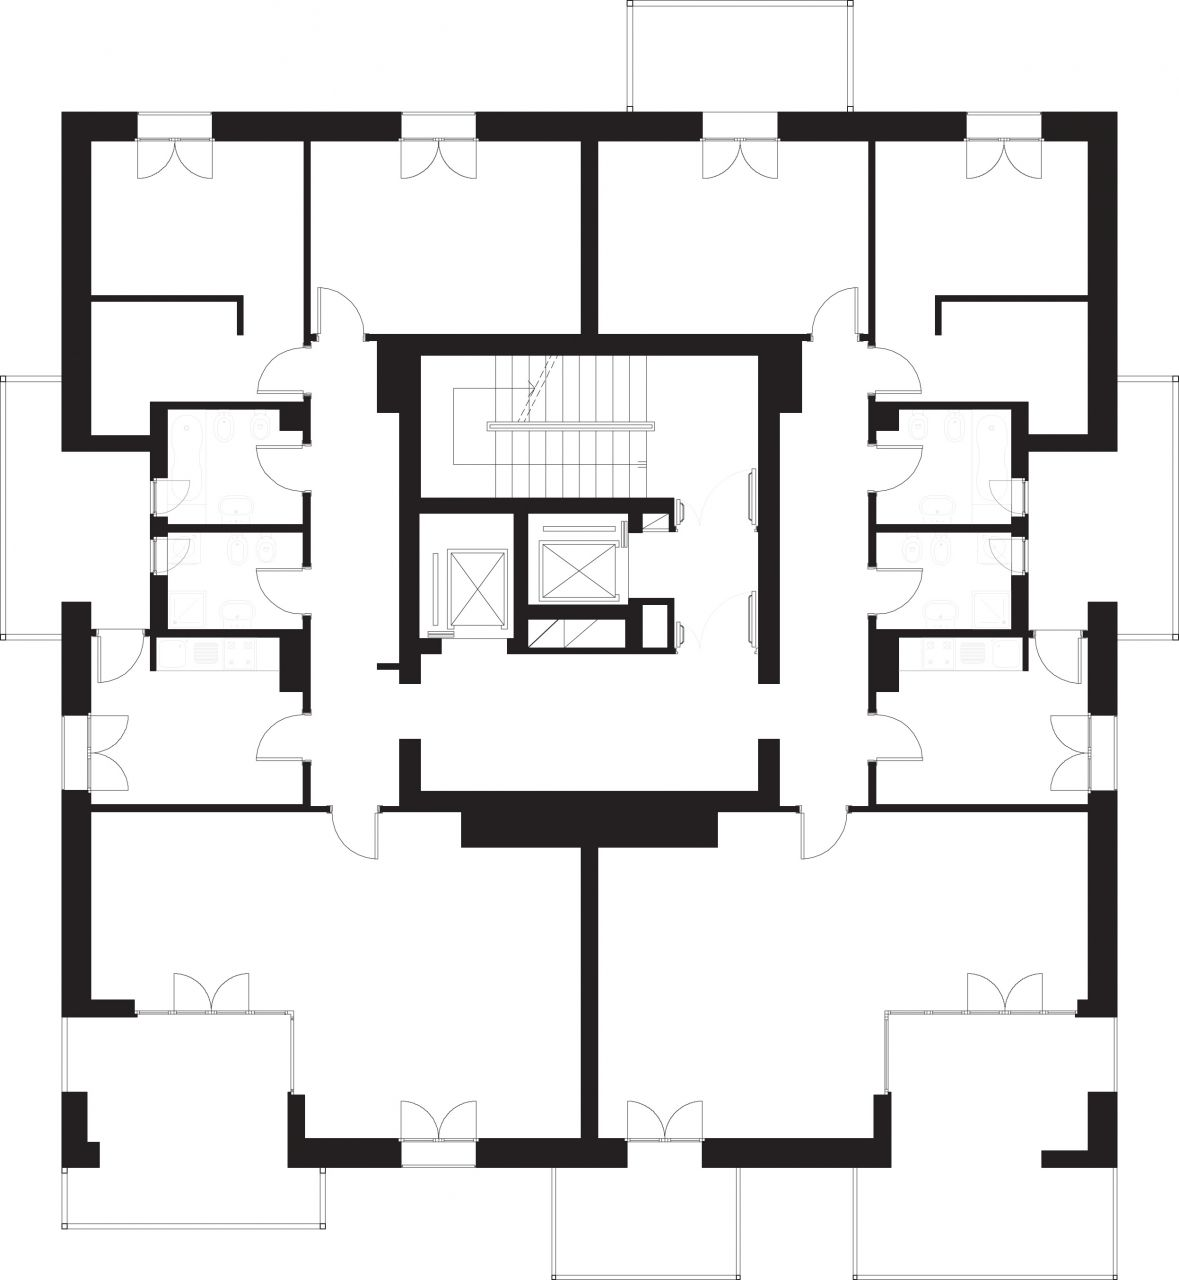 3/8 Typical floor plan